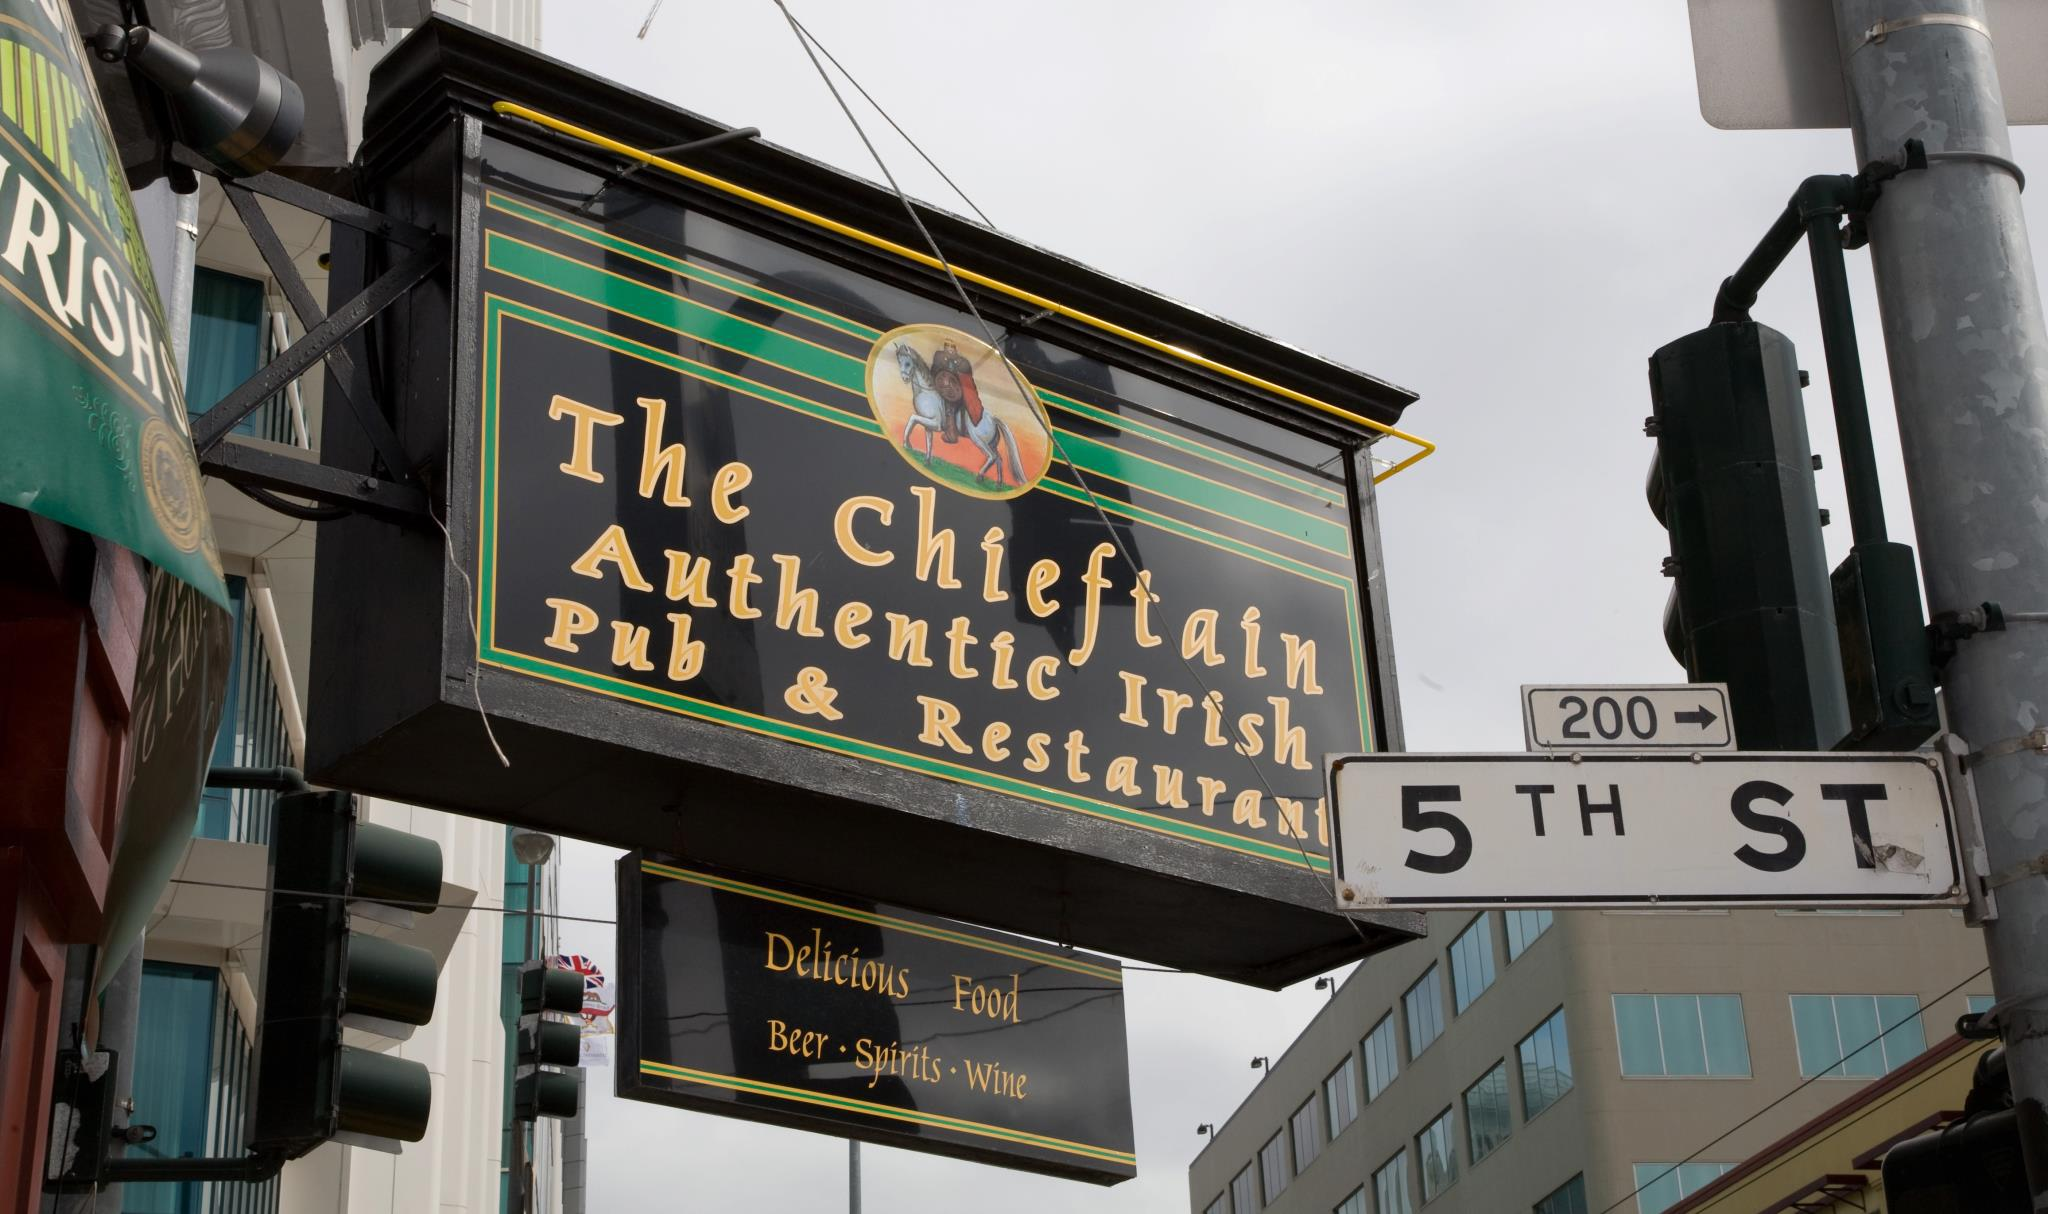 Irish Restaurant in San Francisco, CA - The Chieftain Irish Pub & Restaurant